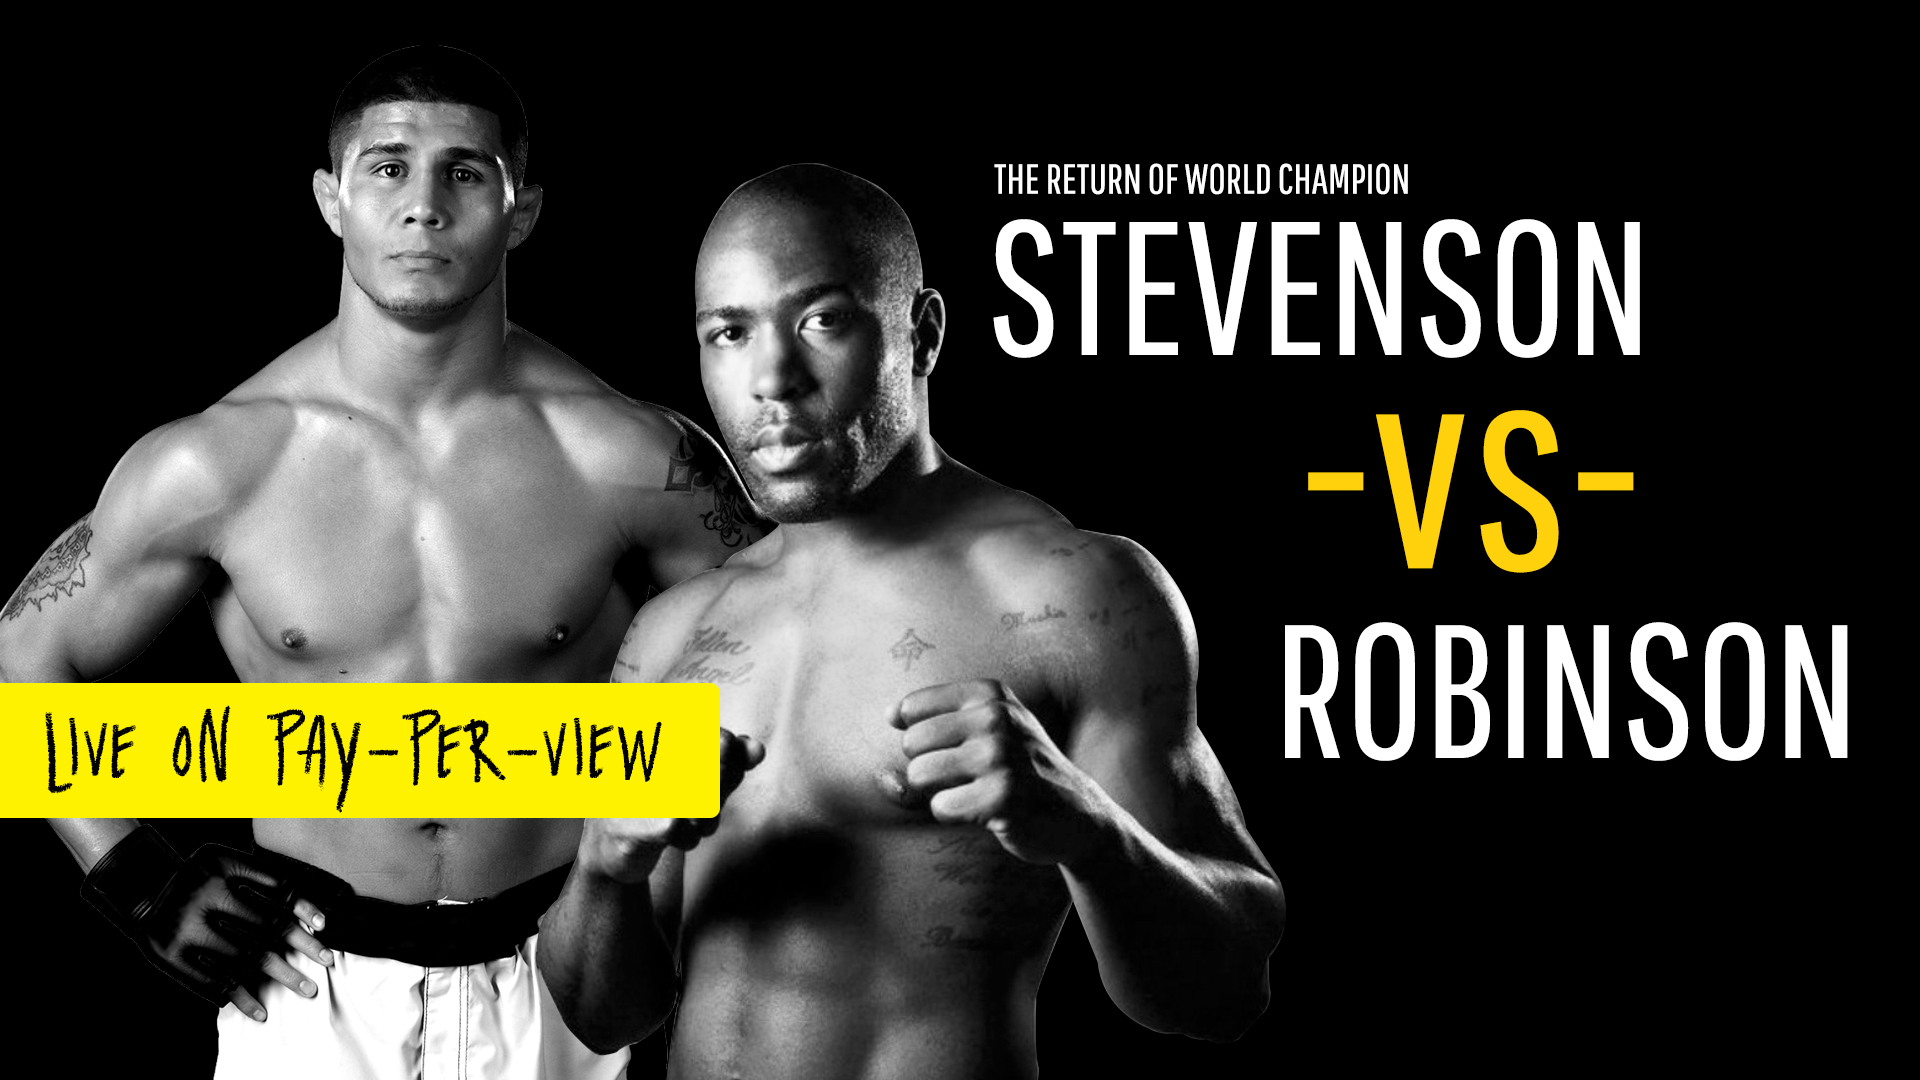 Stevenson vs Robinson, Live on Pay Per View